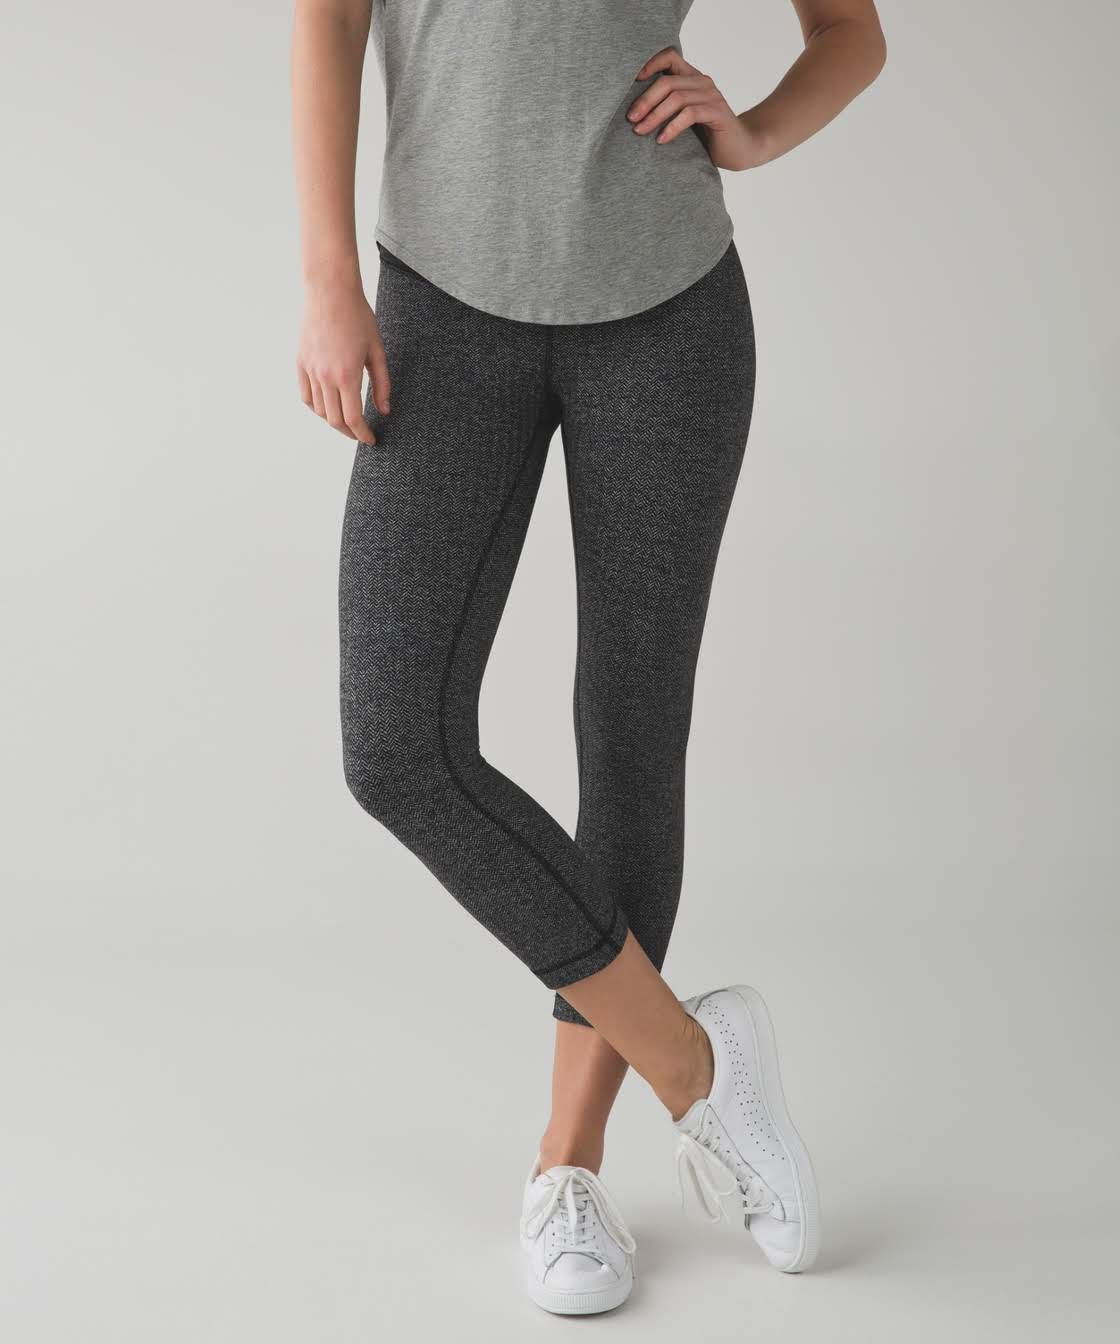 Perfect Fit Iii Wunder Under Crop Workout Clothes Pinterest Running Tights Our Crops Are Designed For Yoga And Other Activities With Flat Seams Gussets The Complimentary Shipping To Us Canada